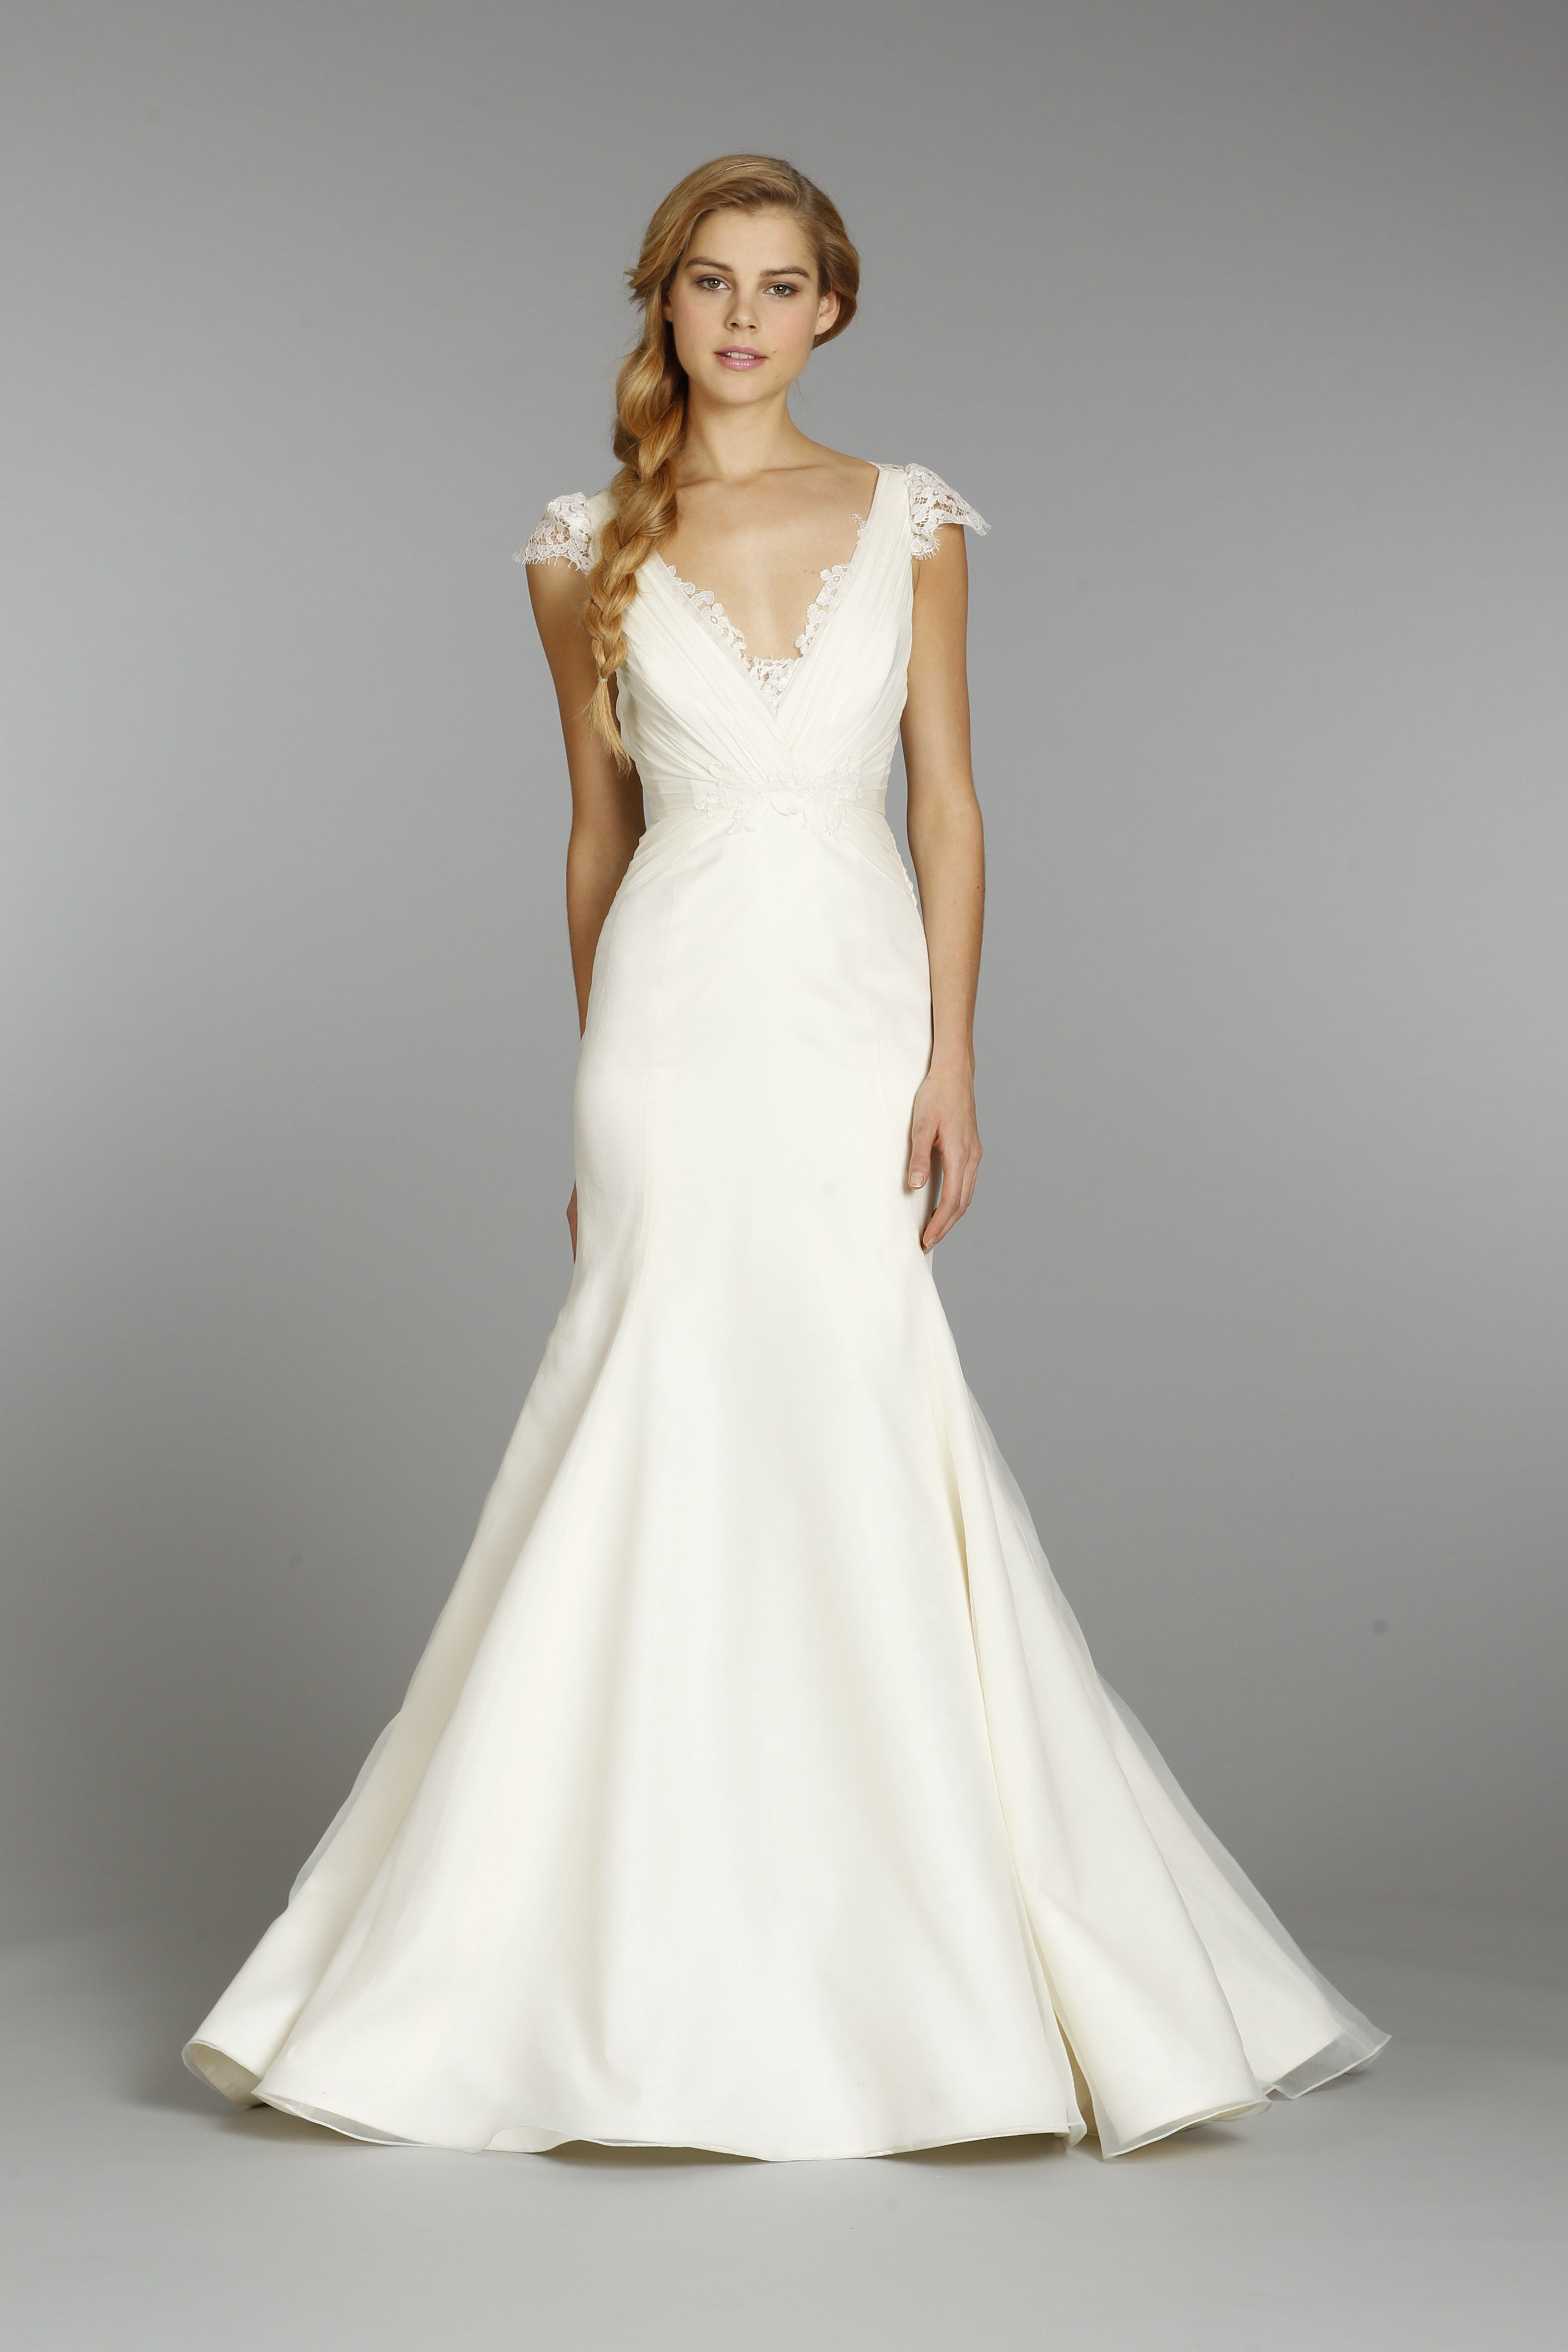 Choosing The Right Wedding Dress For Your Body Shape Wedspiration